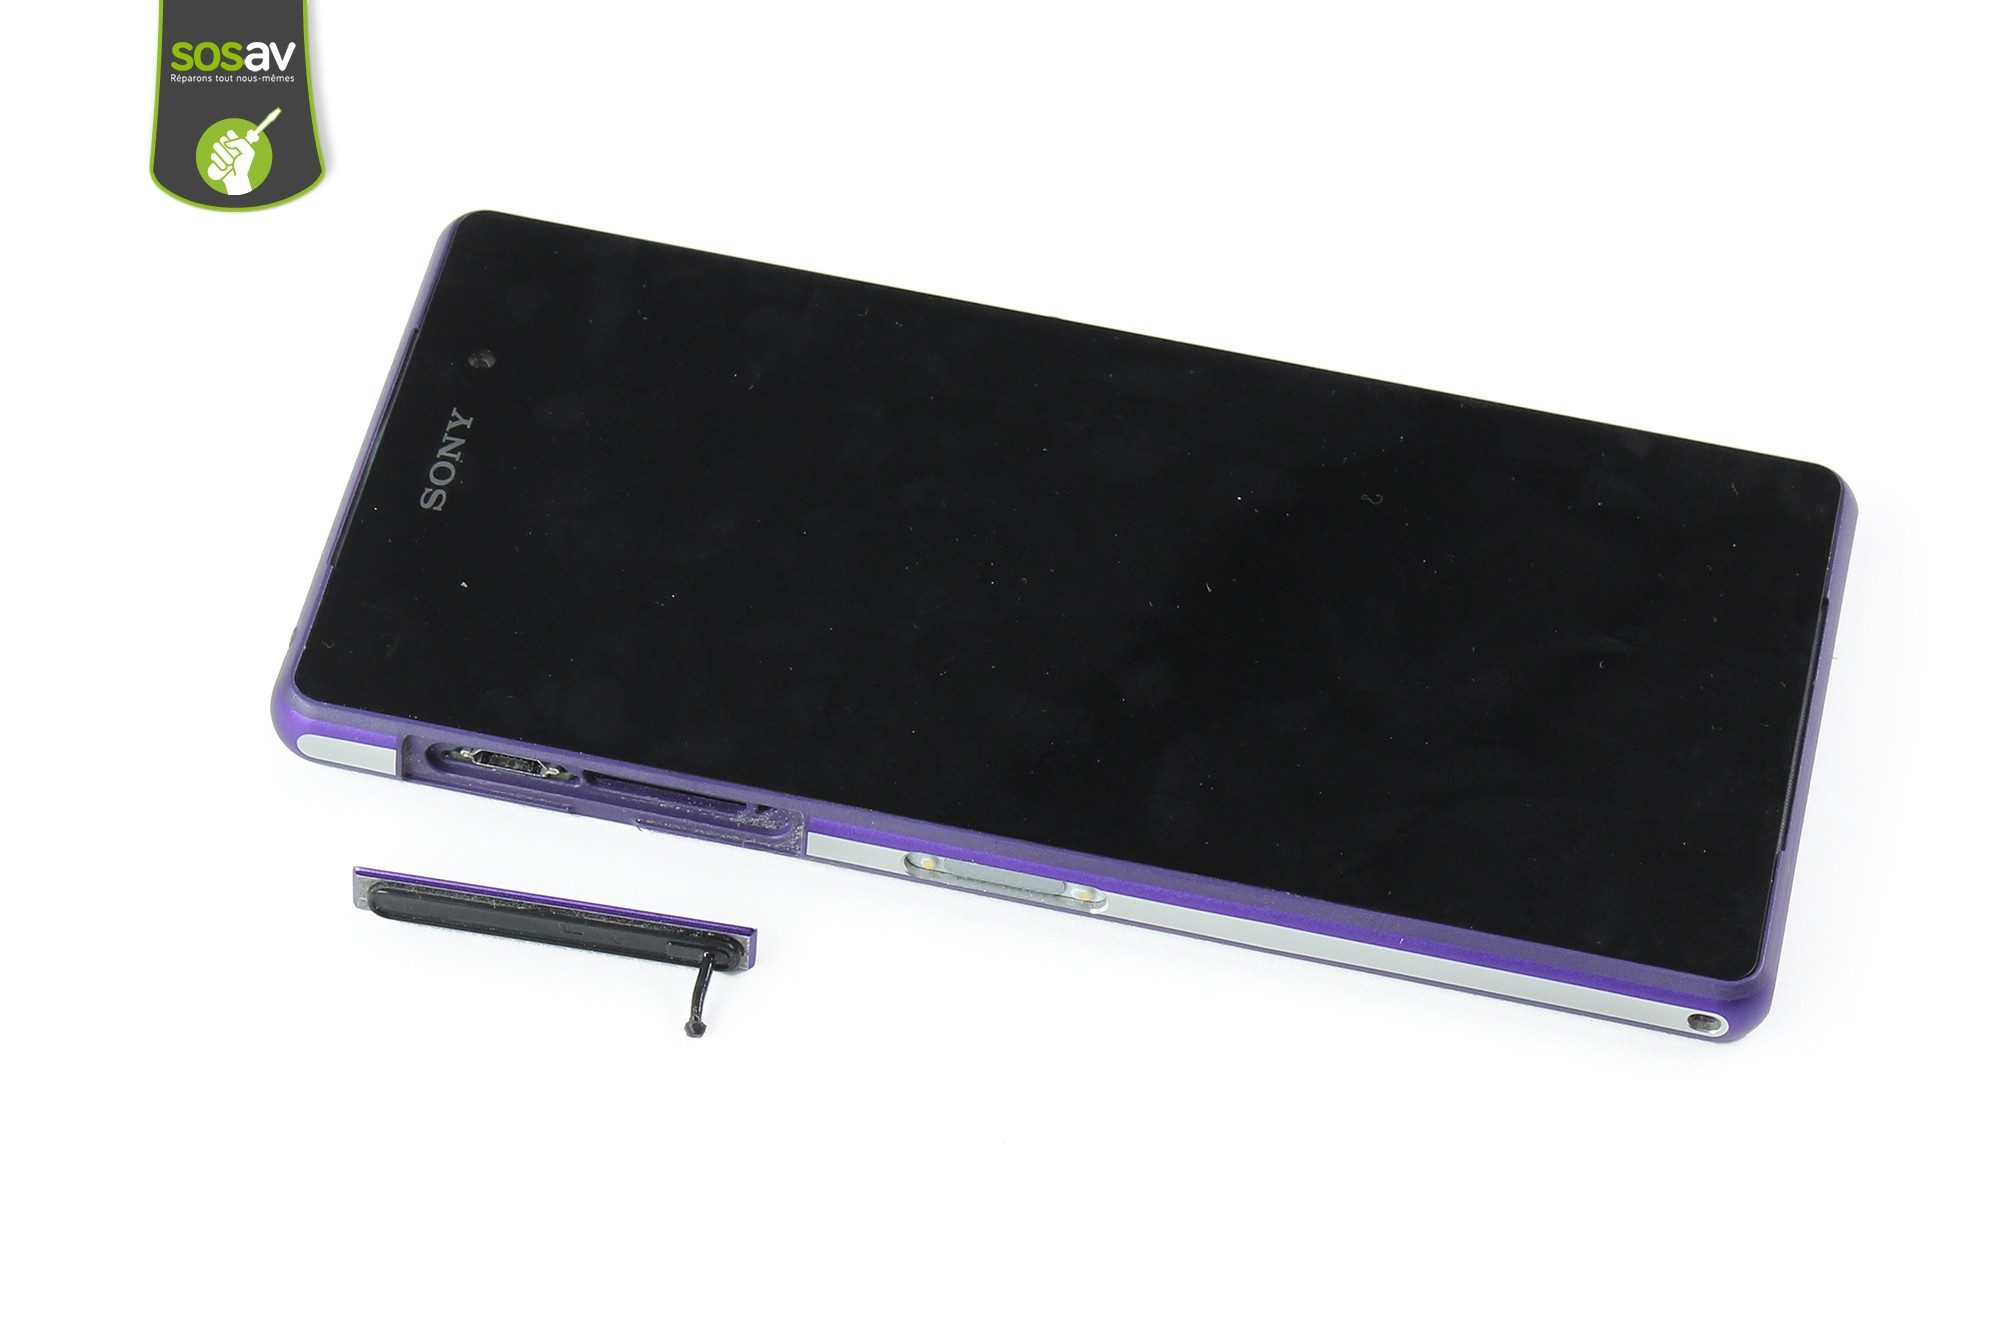 Sony Xperia Z2: One Small Step for Sony